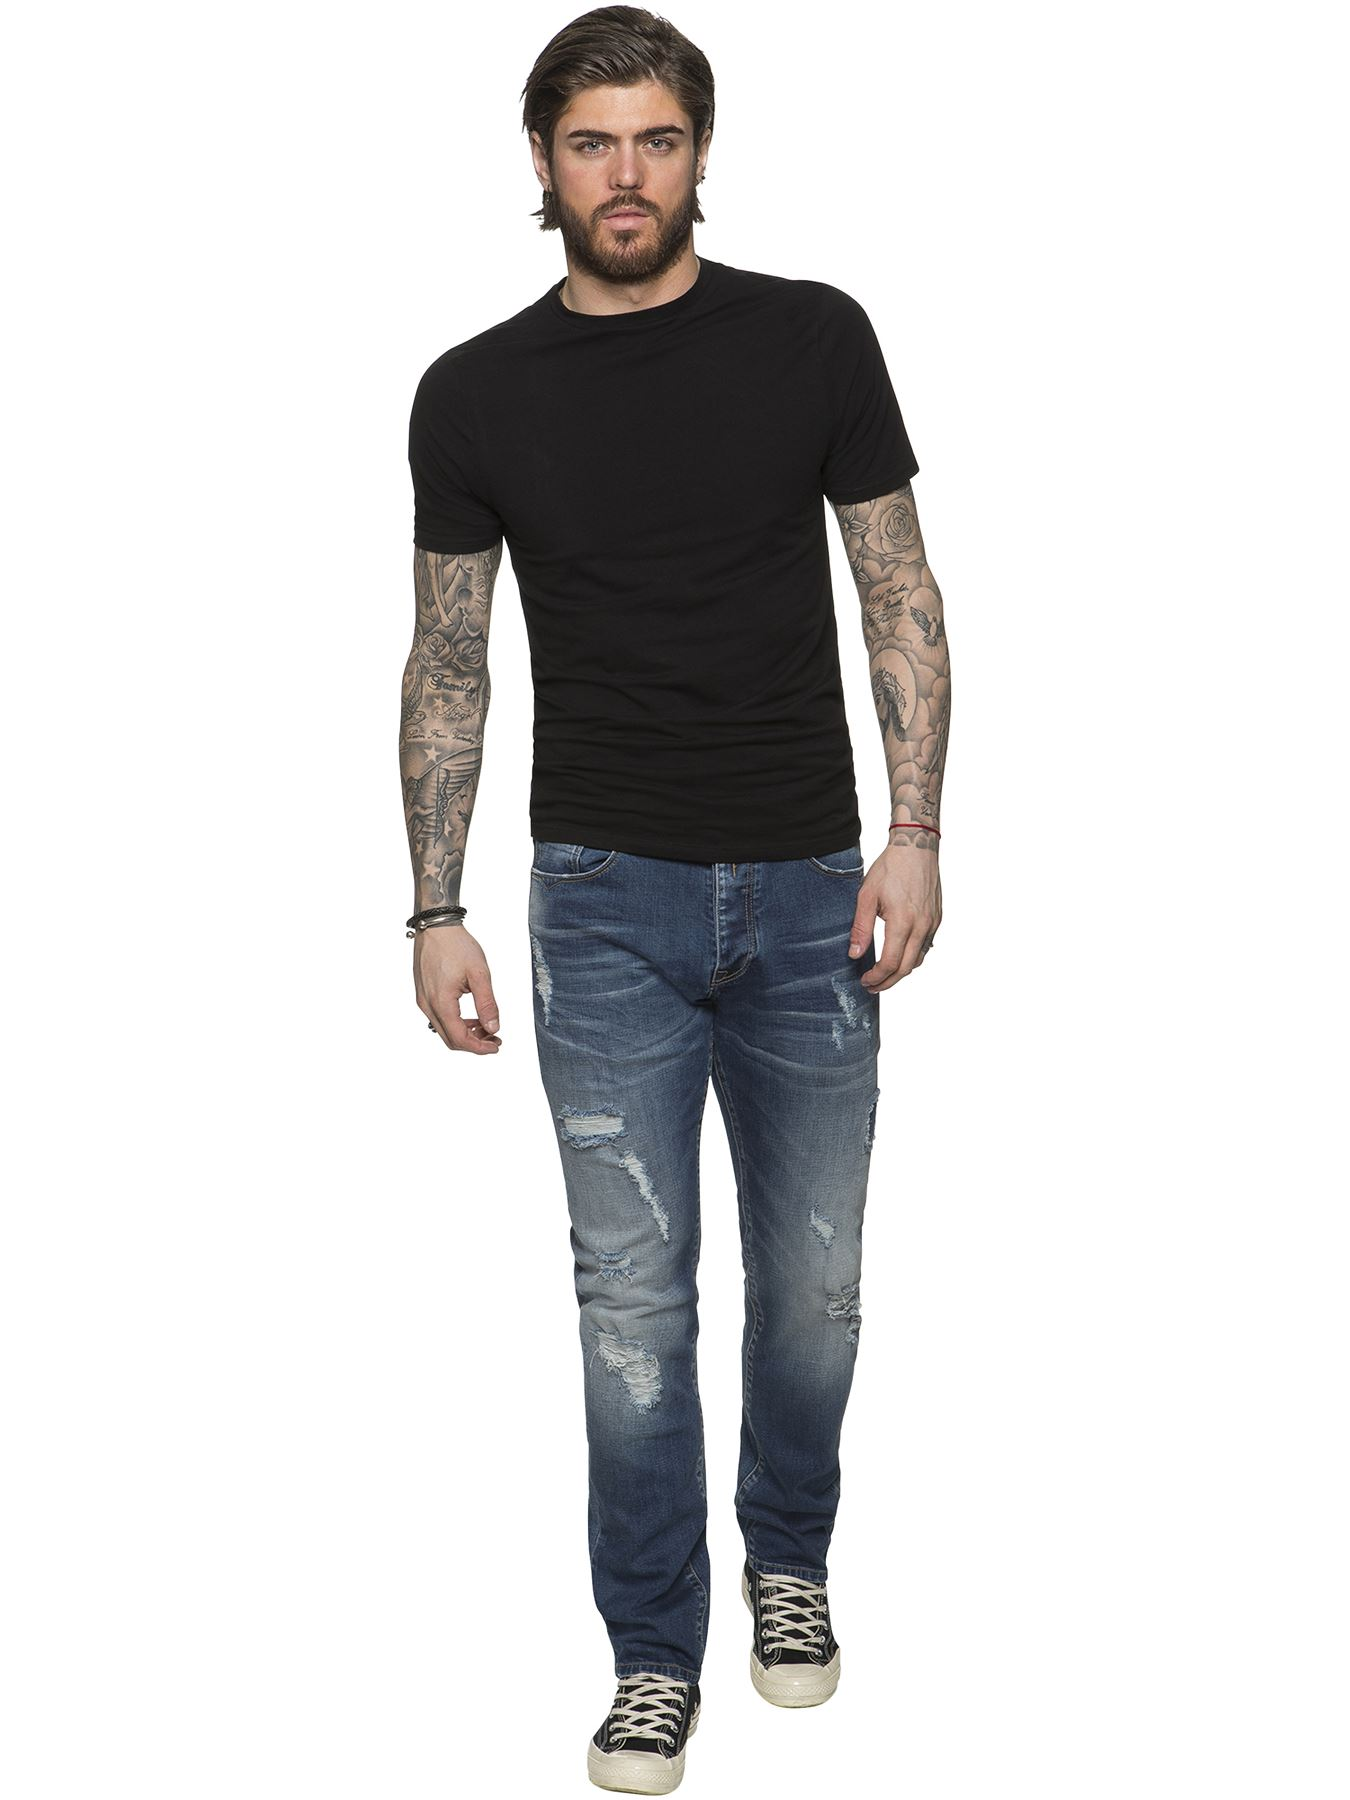 ETO-Designer-Mens-Ripped-Blue-Jeans-Distressed-Denim-Tapered-Fit-Trousers-Pants thumbnail 6